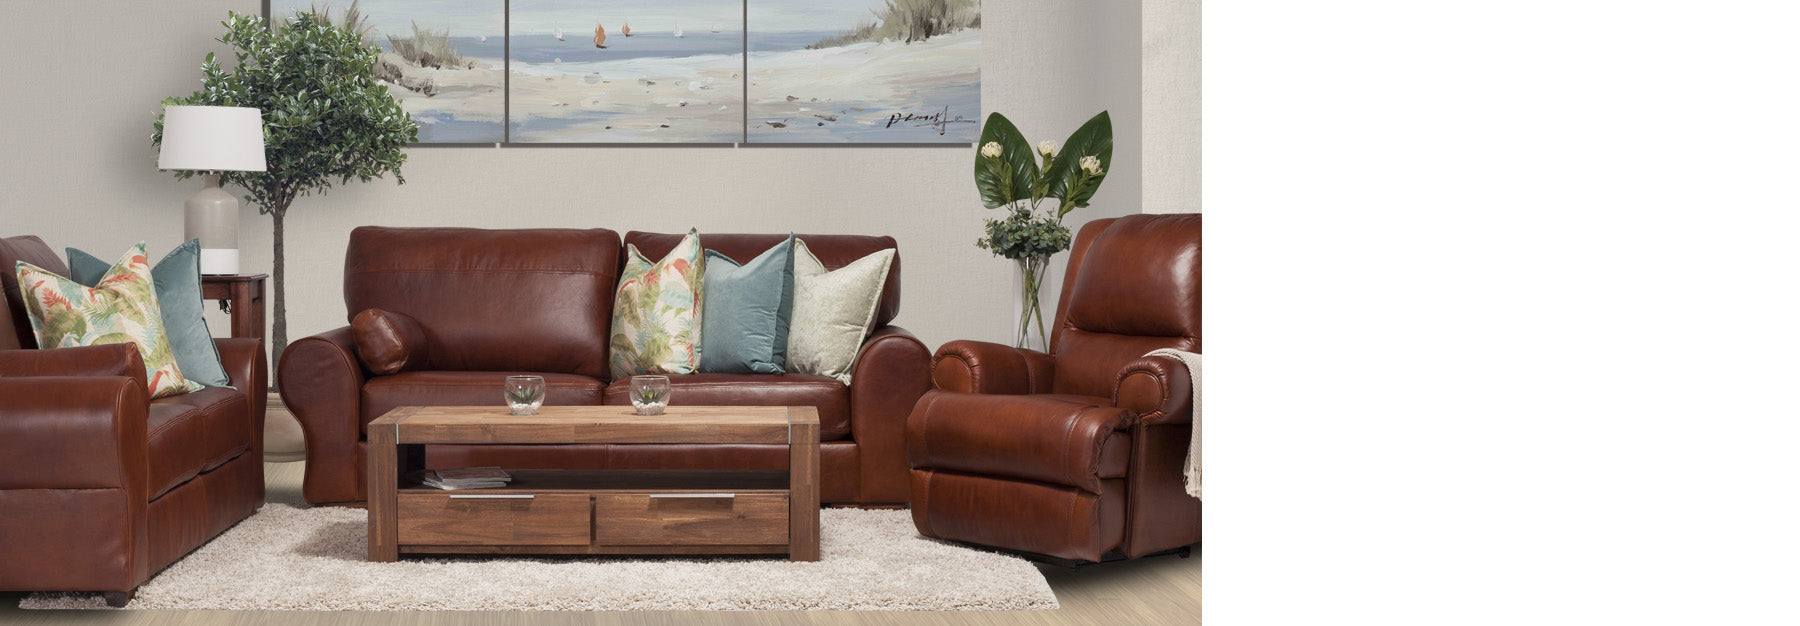 Leather furniture buy fabric sofa dining table leather for Ok furniture kitchen units